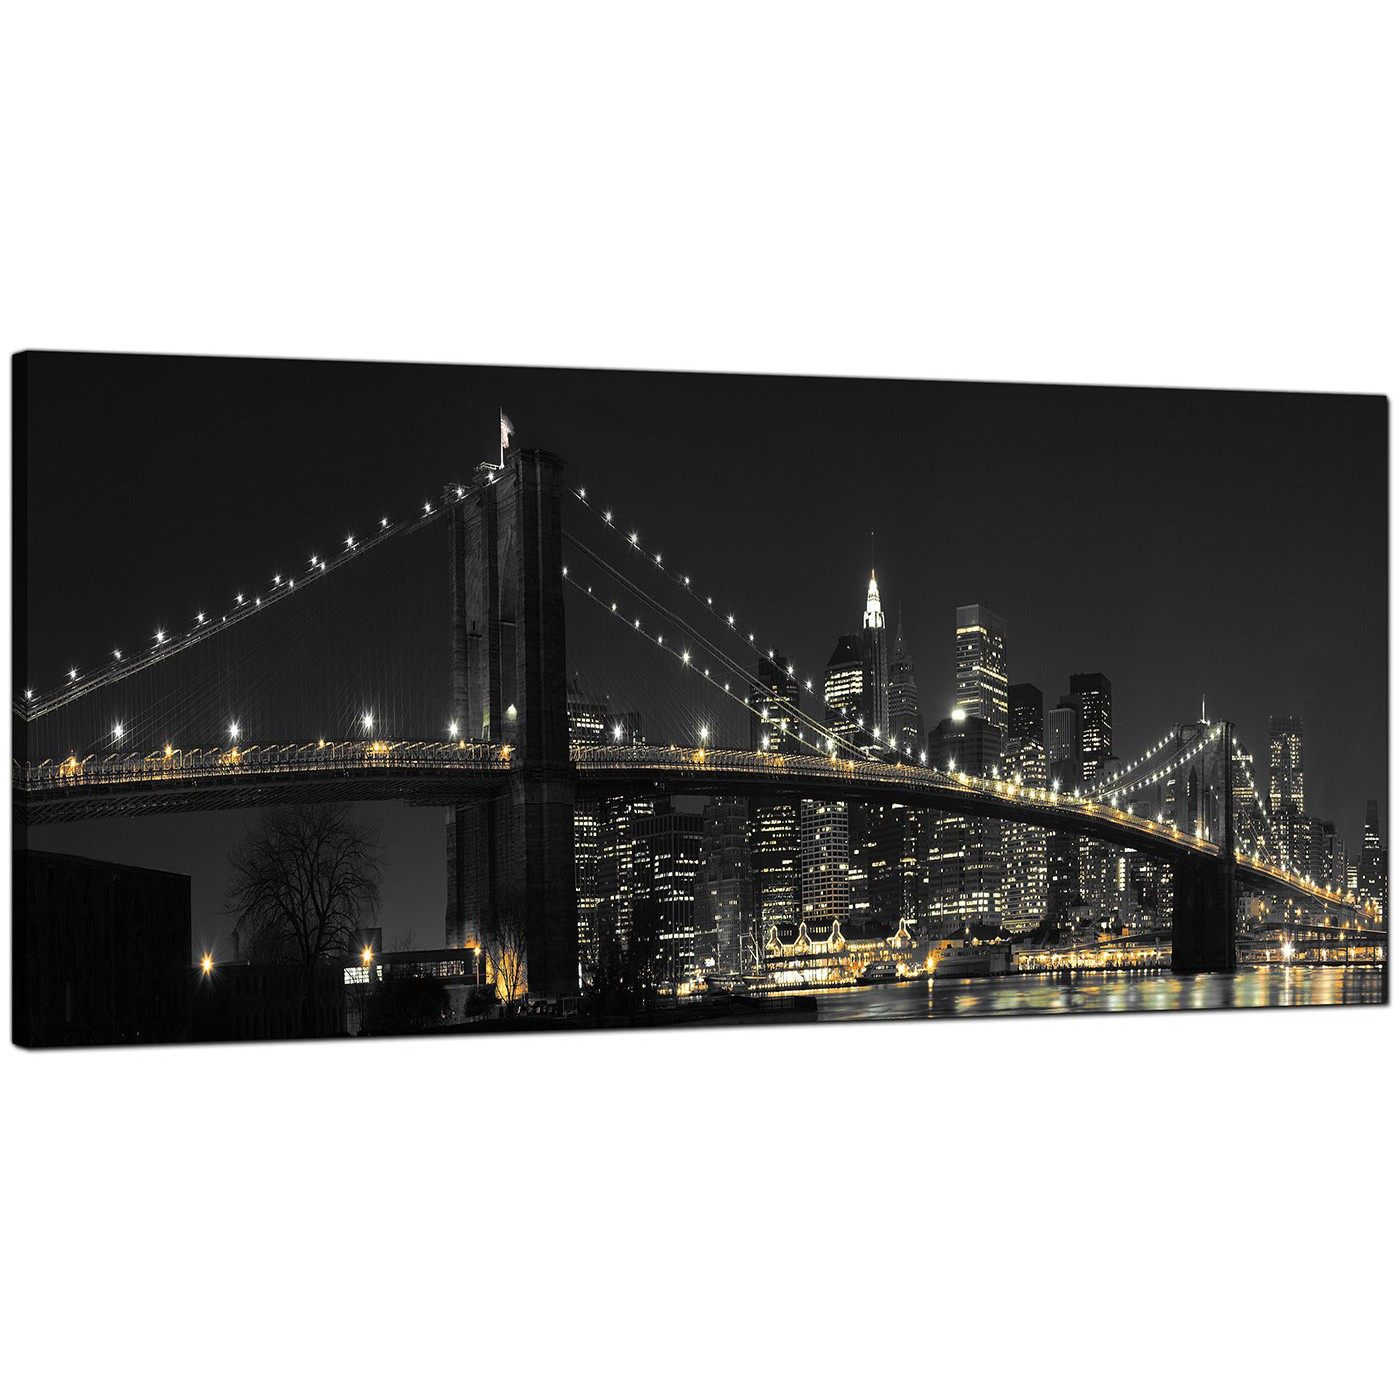 Large Framed Wall Art New York City Landscape Sunset: Panoramic Canvas Art Of Brooklyn Bridge New York For Your